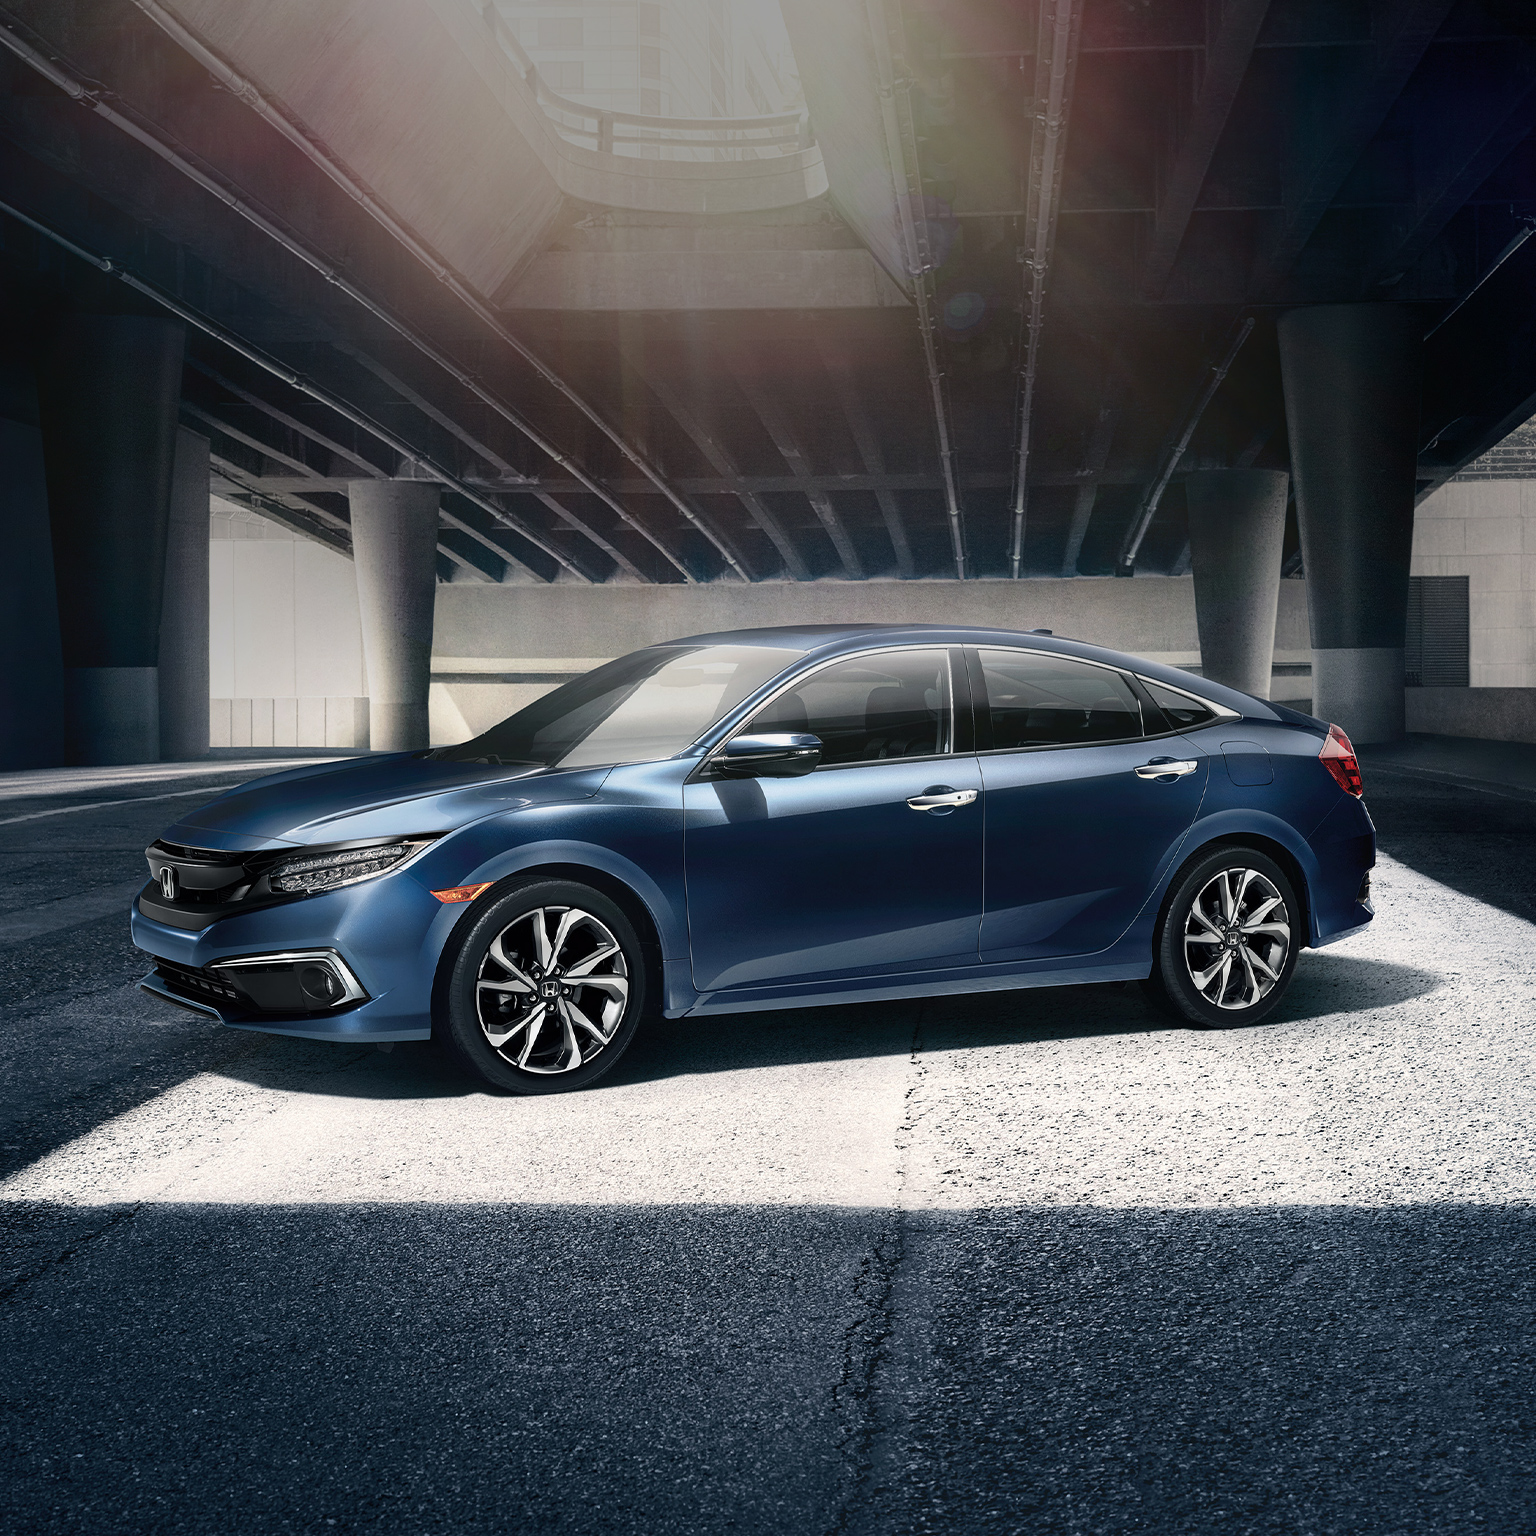 What is the MPG of the 2020 Honda Civic?